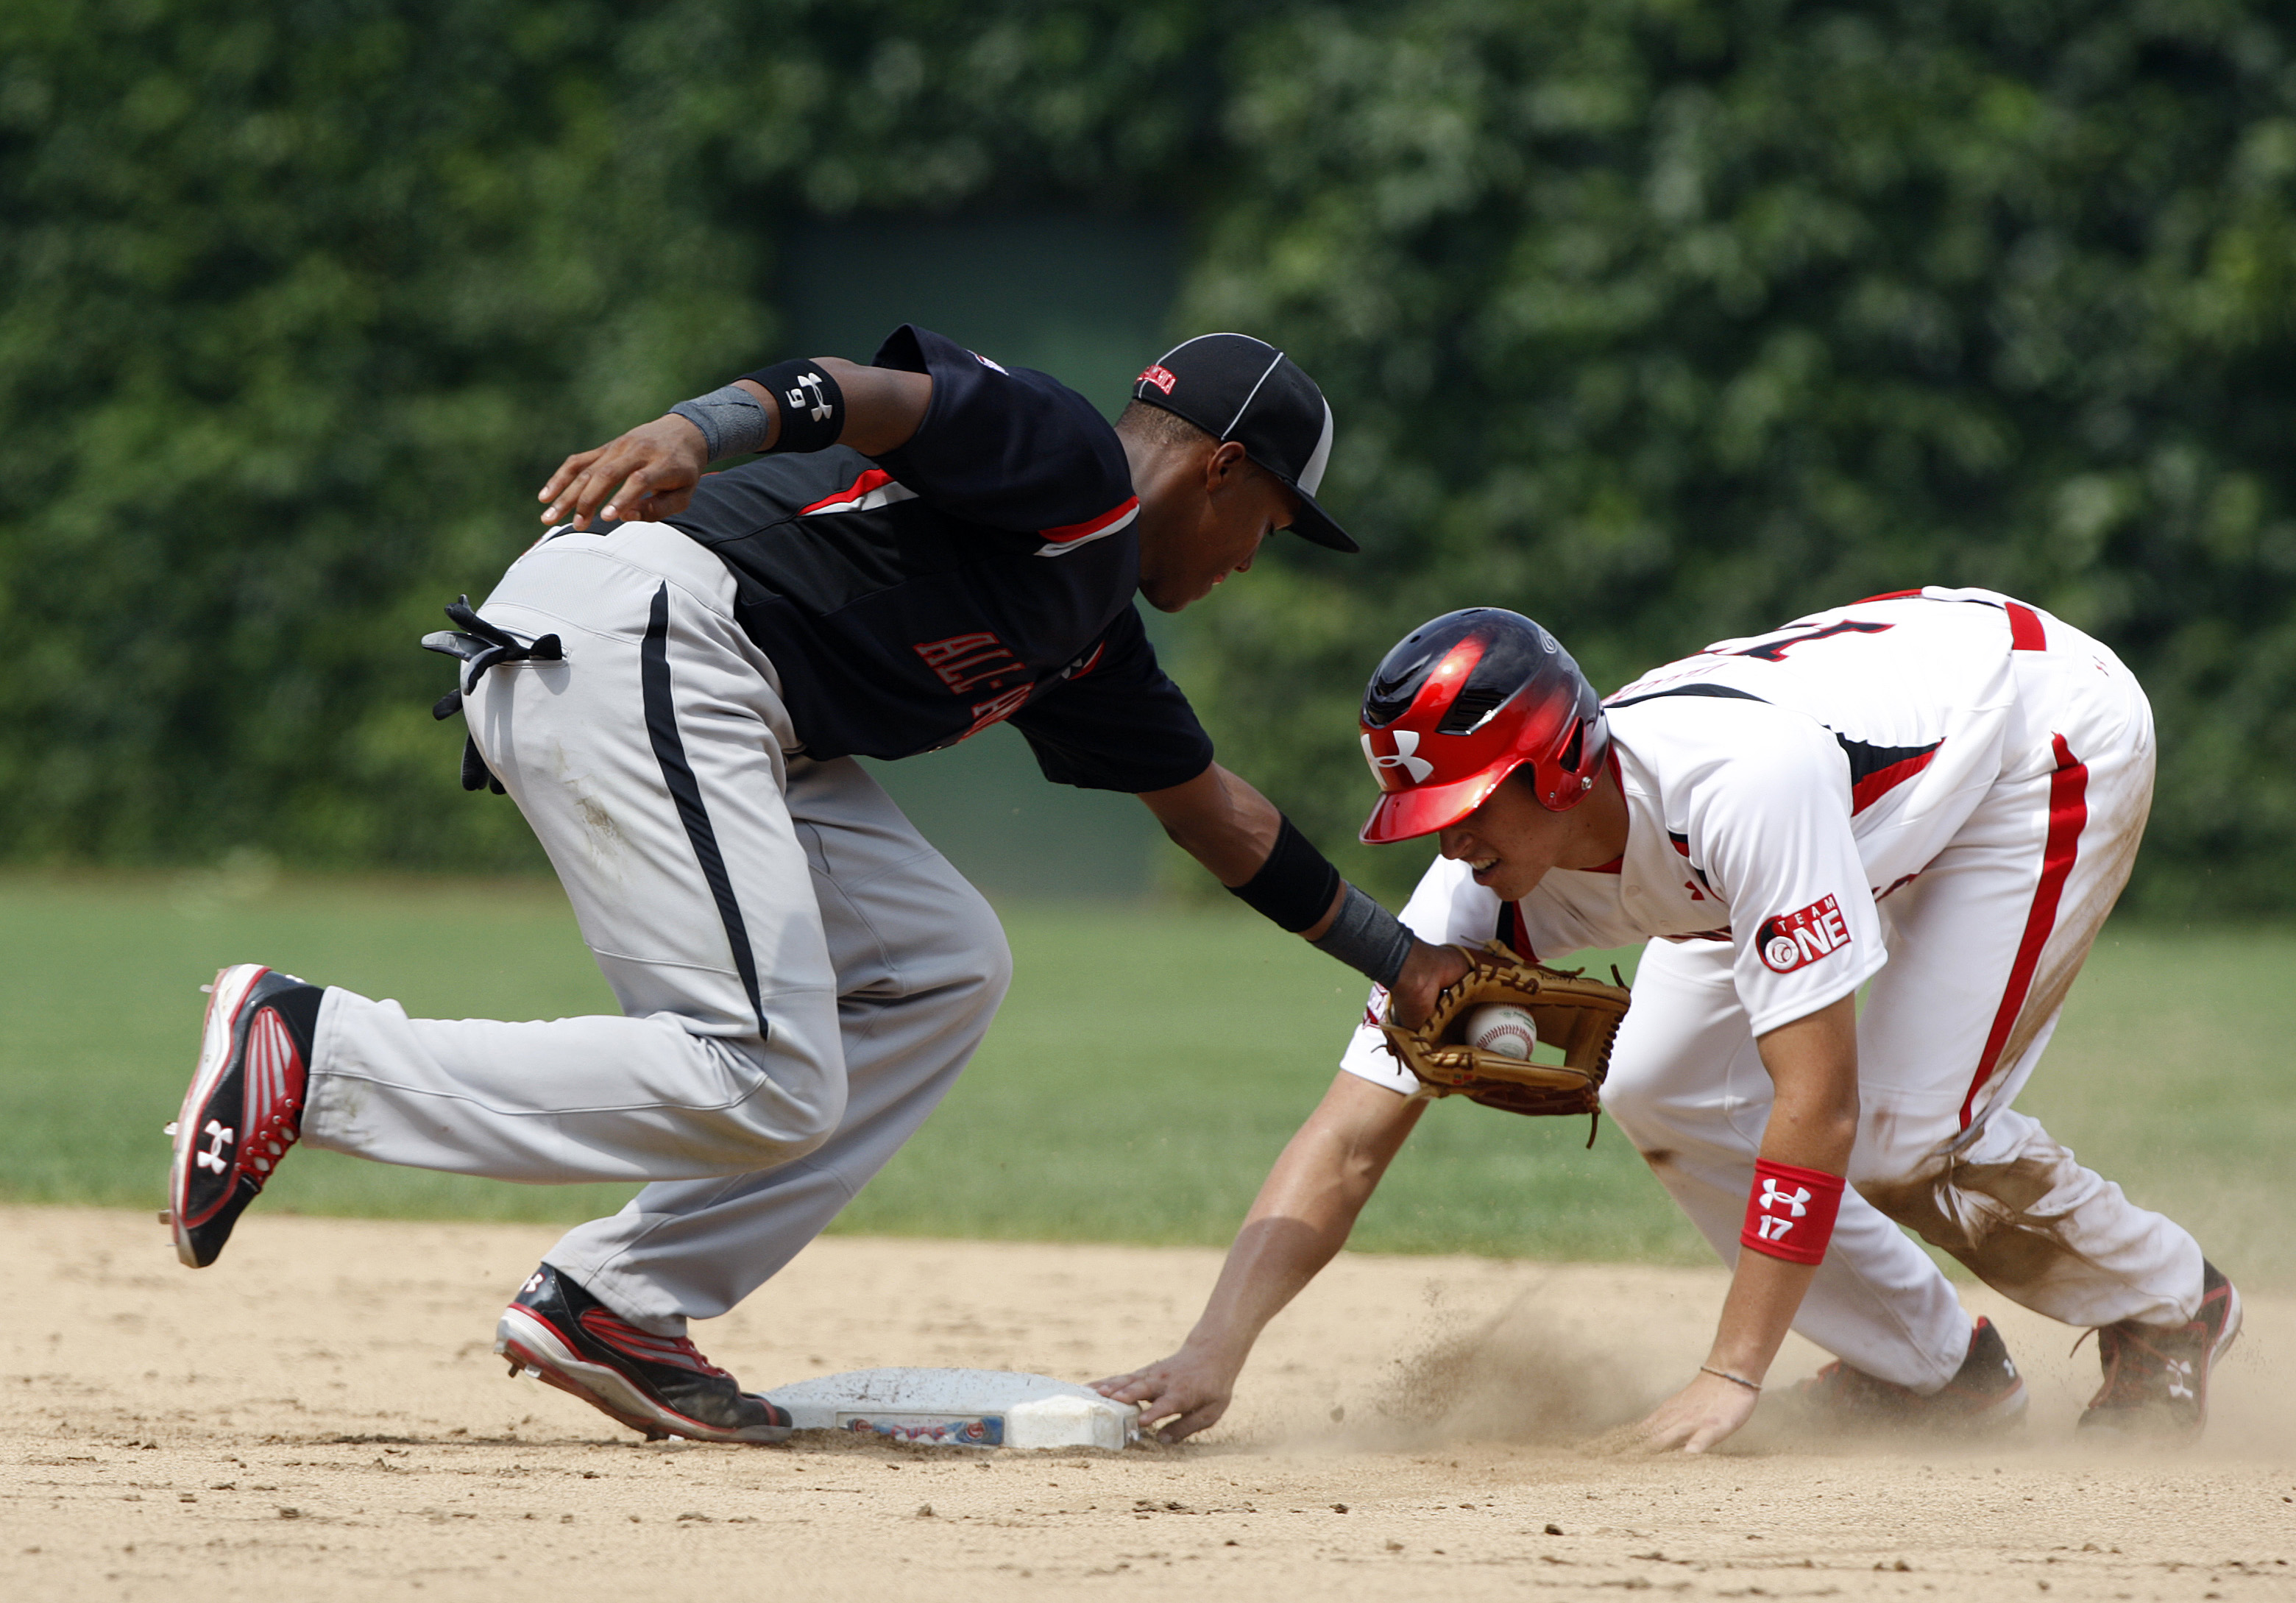 CHICAGO - AUGUST 8:  Yordy Cabrera of the Baseball Factory is late with the tag on Garin Cecchini of Team One after Garin stole second base during the Under Armour All-American Baseball game at Wrigley Field on August 8, 2009 in Chicago, Illinois.  (Photo